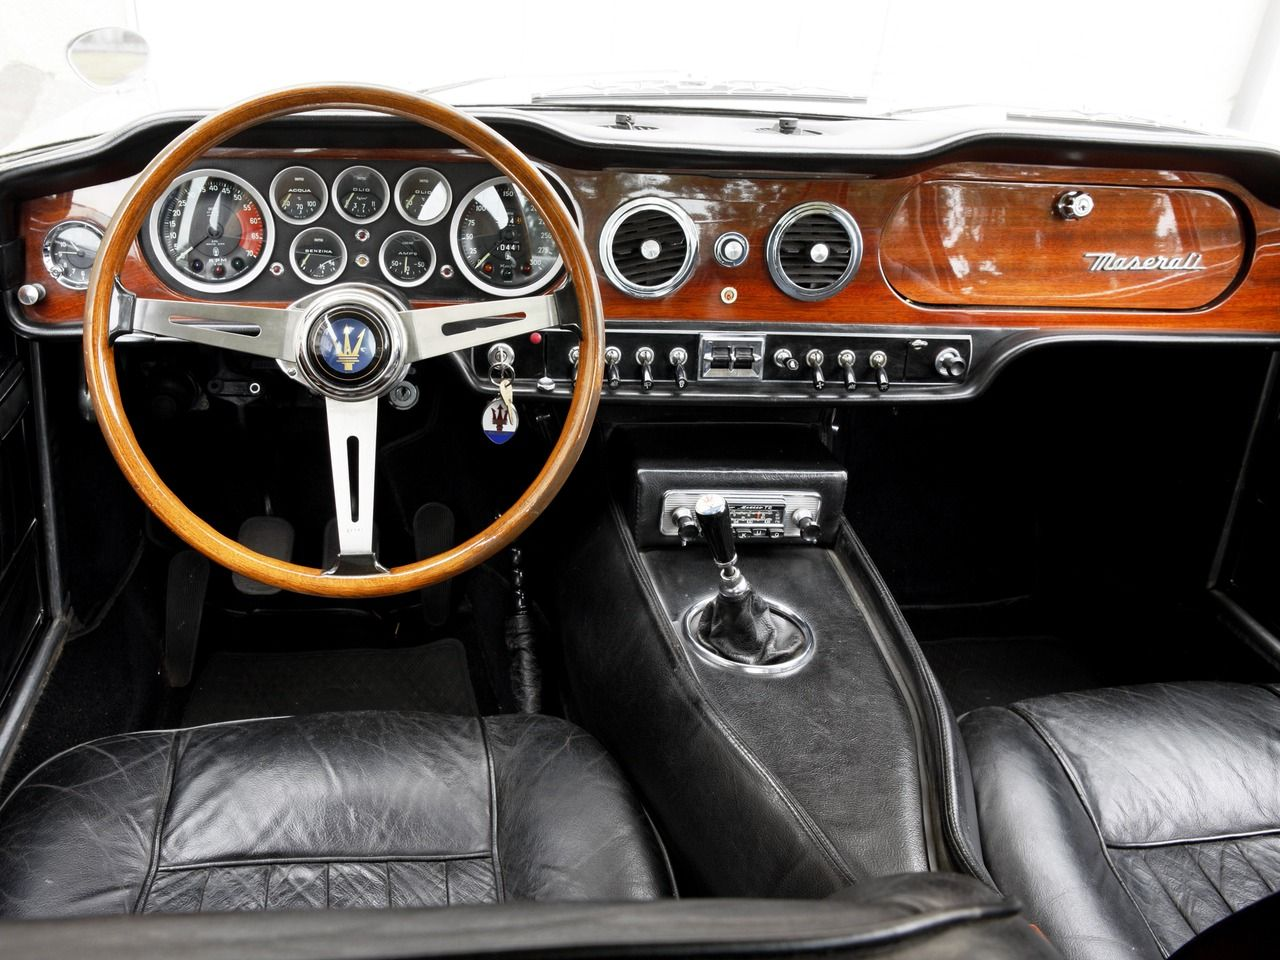 1966 maserati classic vintage collection sportscars cars car interior fancy classy. Black Bedroom Furniture Sets. Home Design Ideas